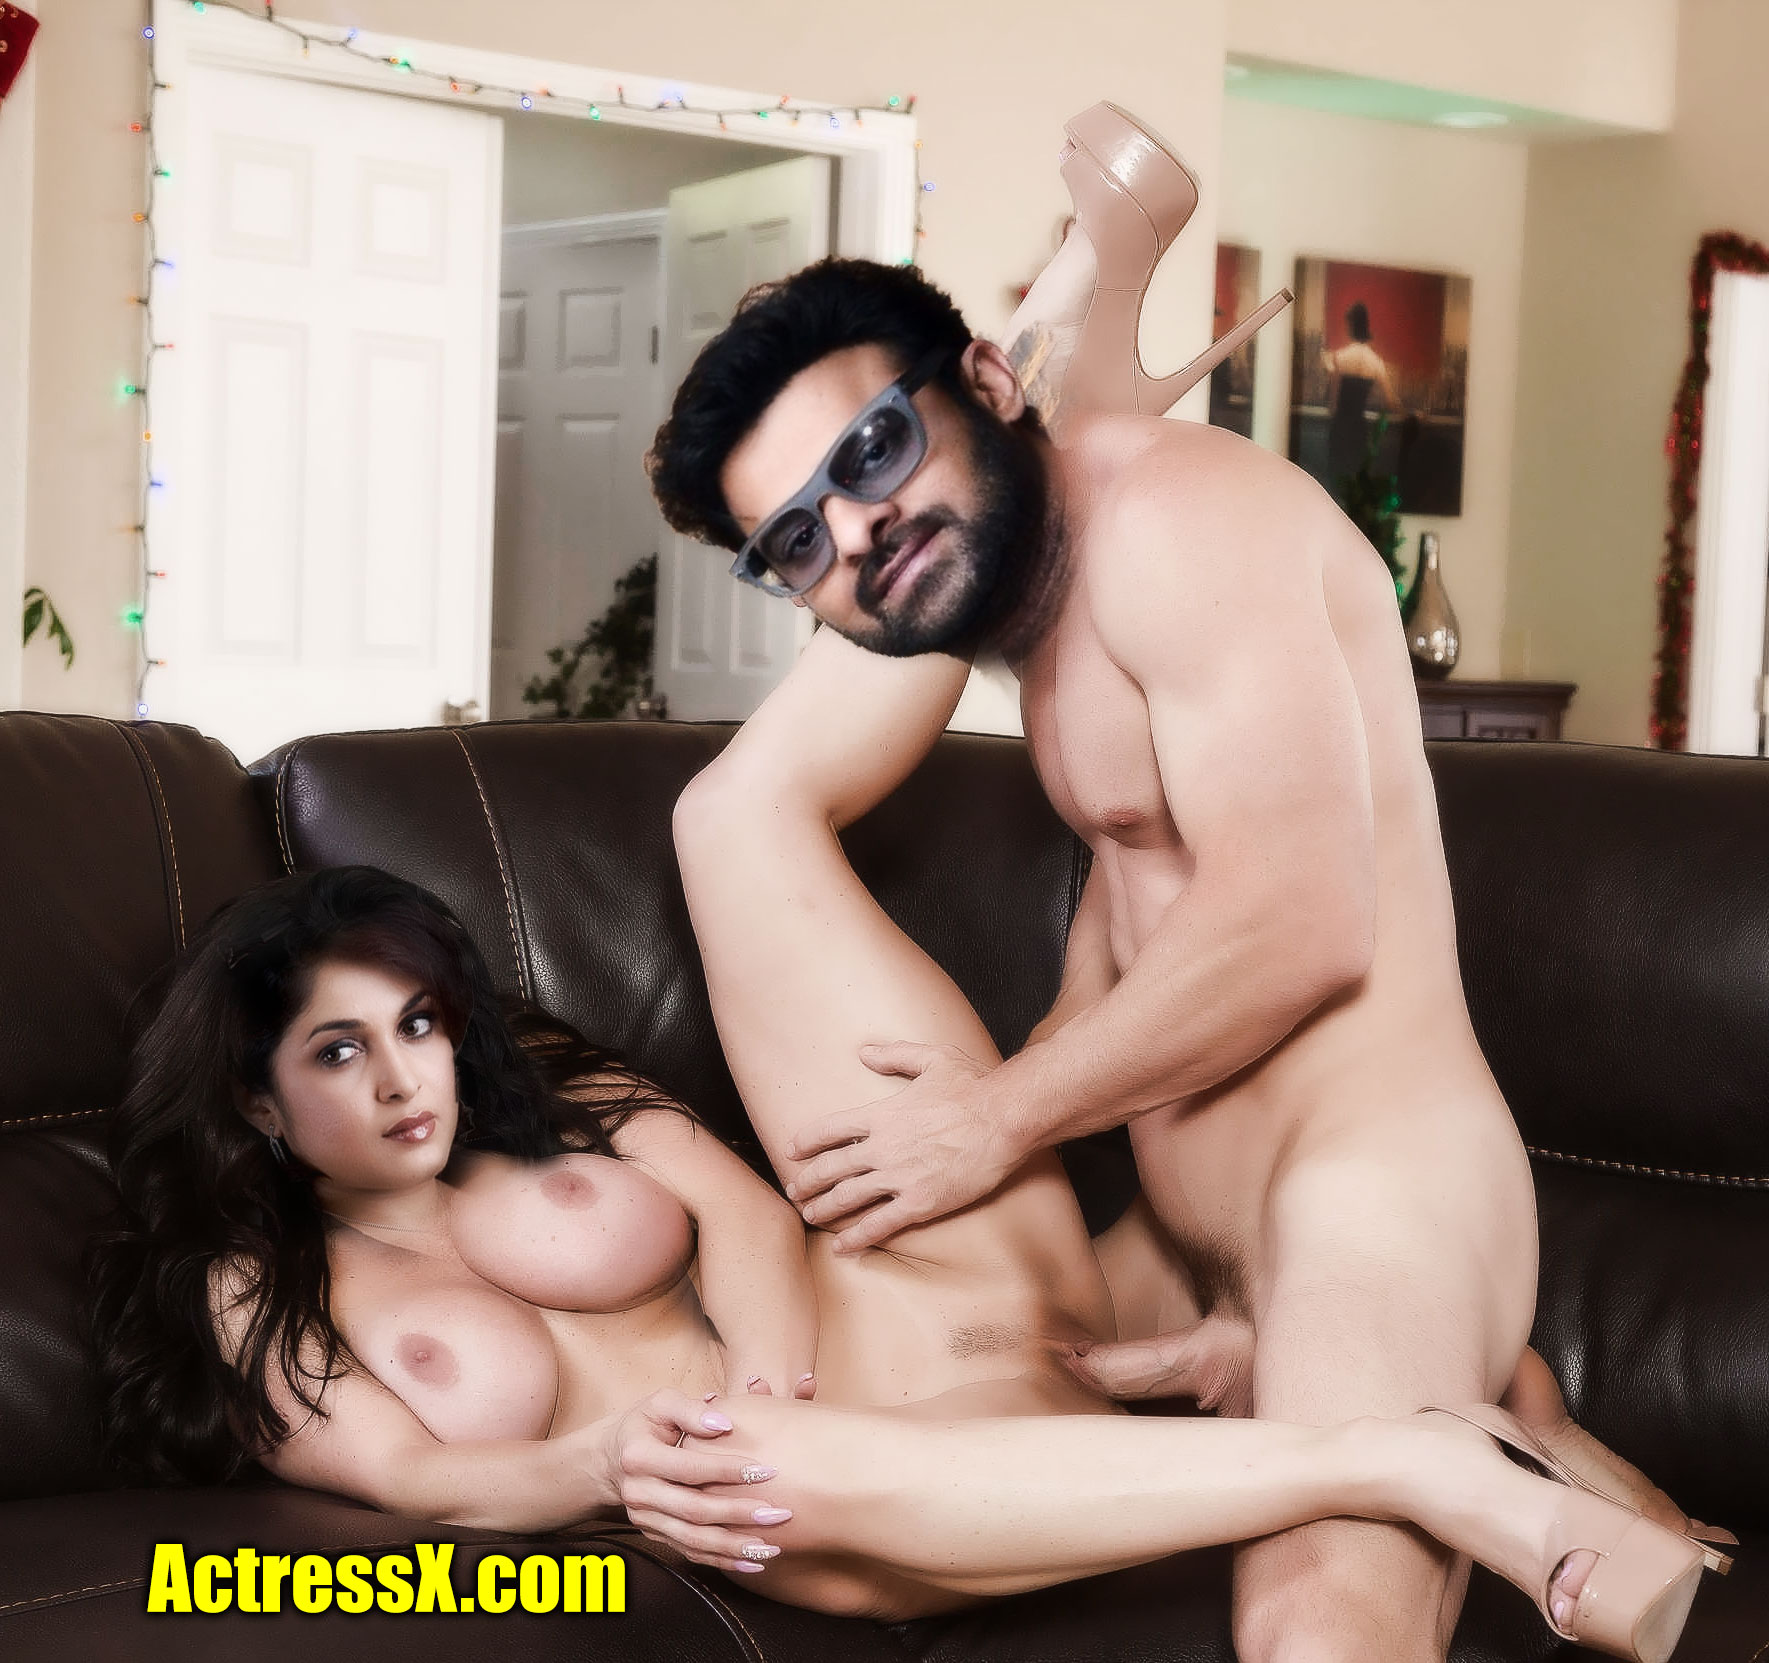 Prabhas private casting couch sex with naked milf mom Ramya Krishnan photo